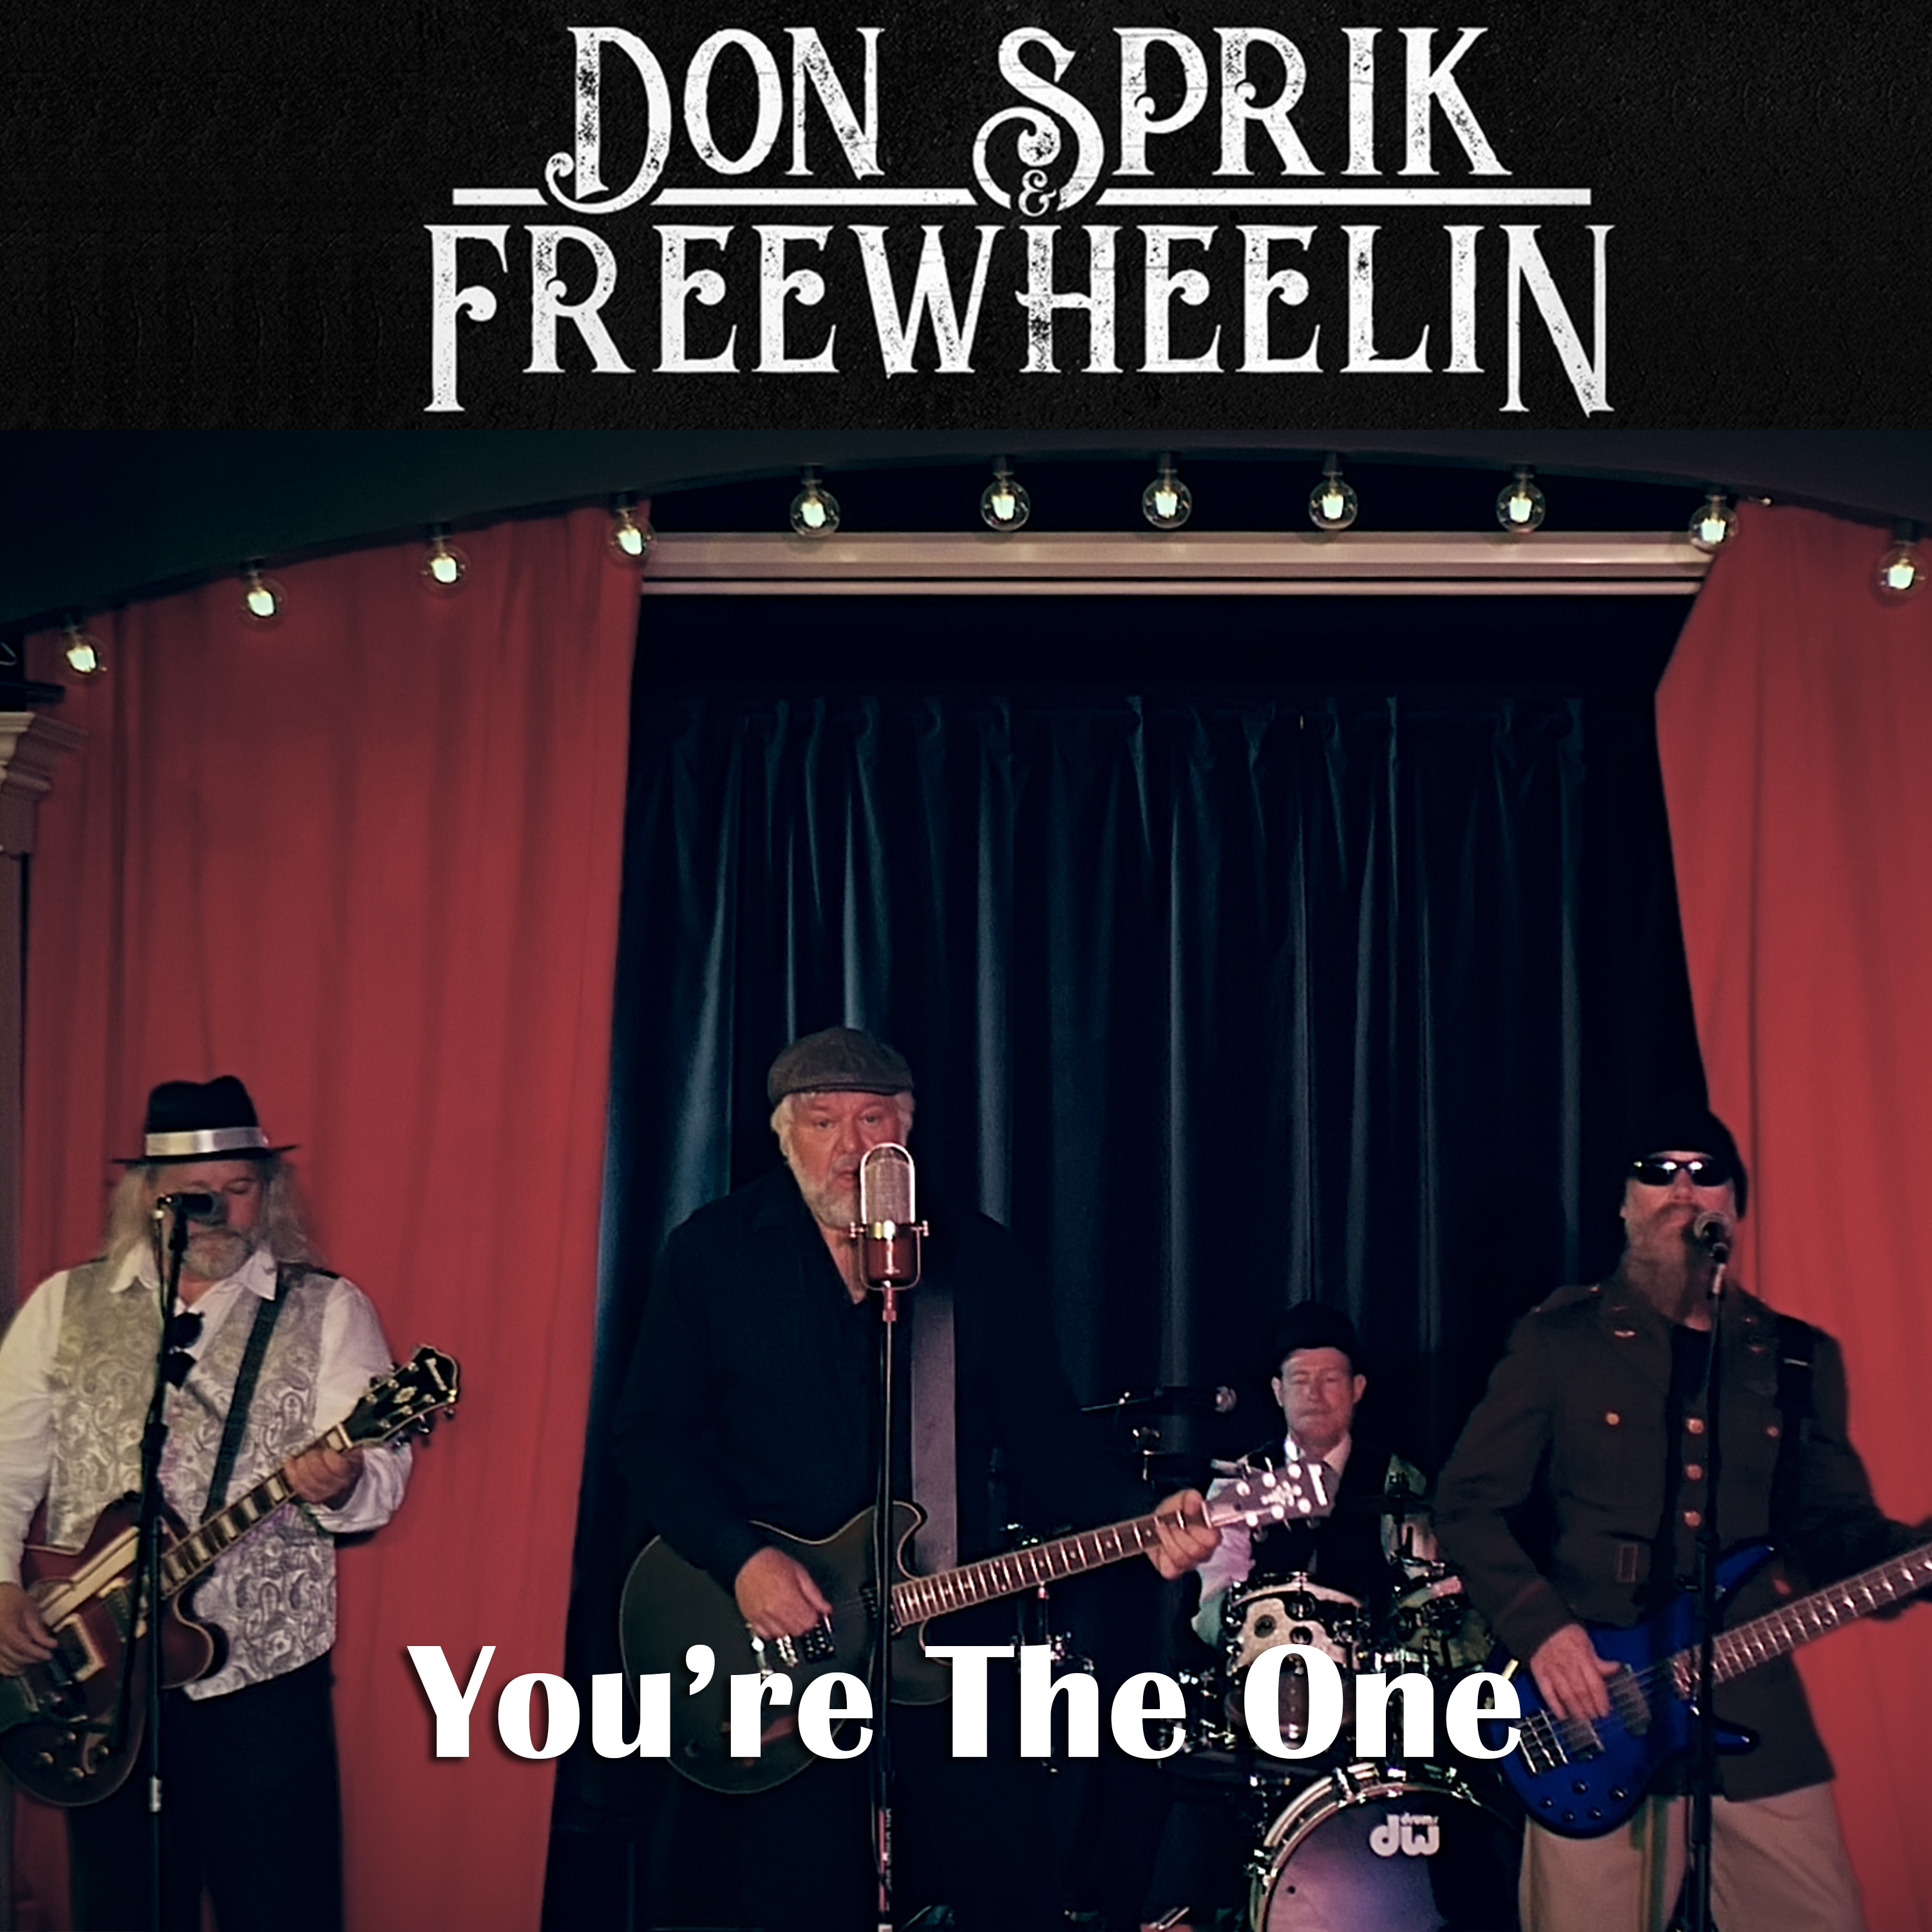 Embrace Rich and Dynamic 70's Rock Vibes: Rising Musical Act Don Sprik & Freewheelin Set to Soar with New Single